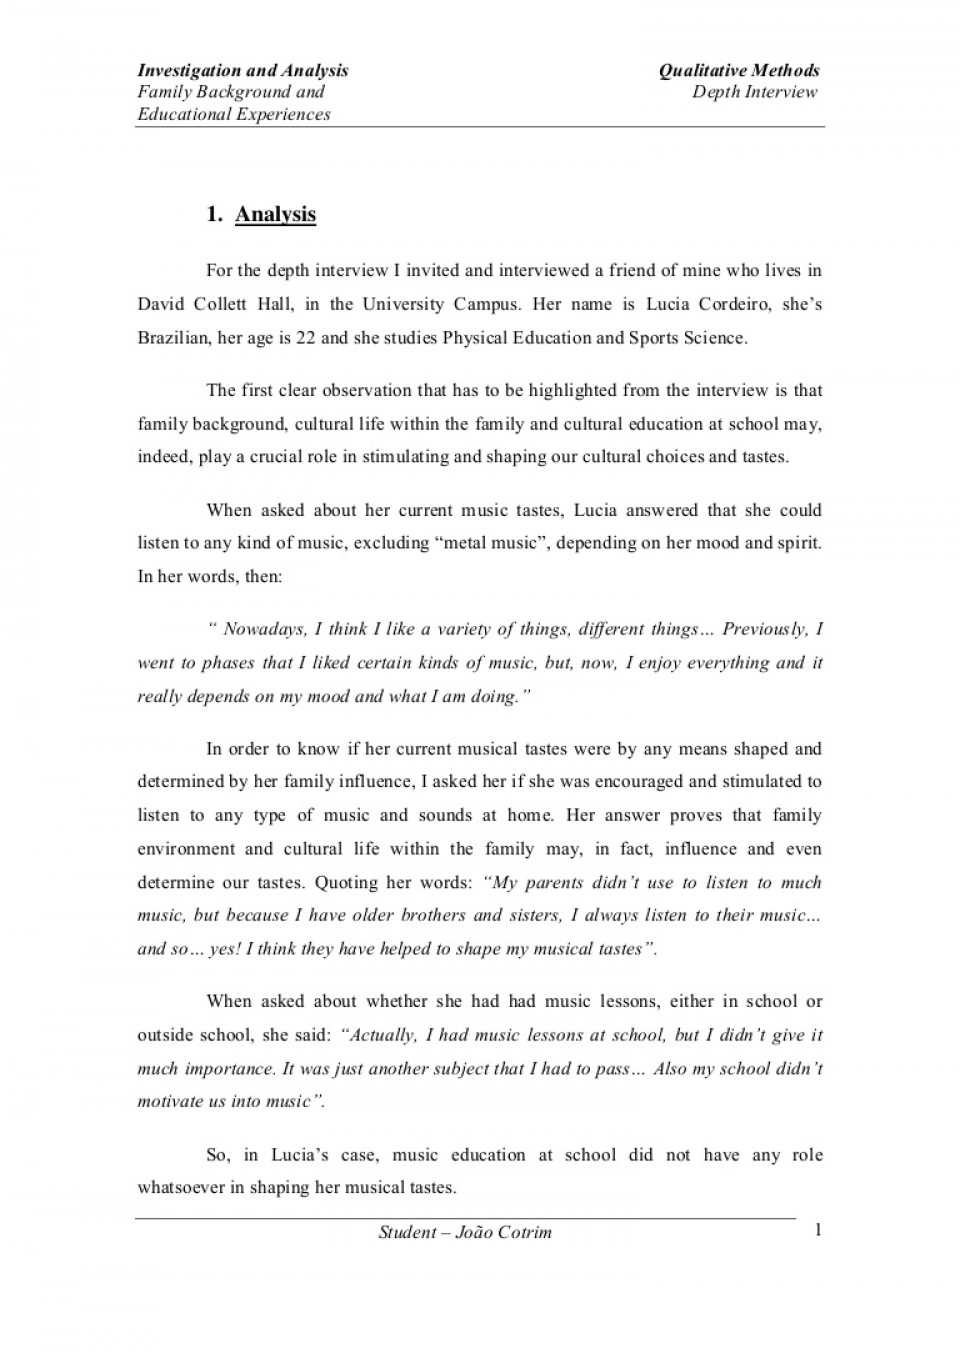 010 Depthinterview Phpapp01 Thumbnail Essay Example Striking Profile How To Start A On Person Homeless 960